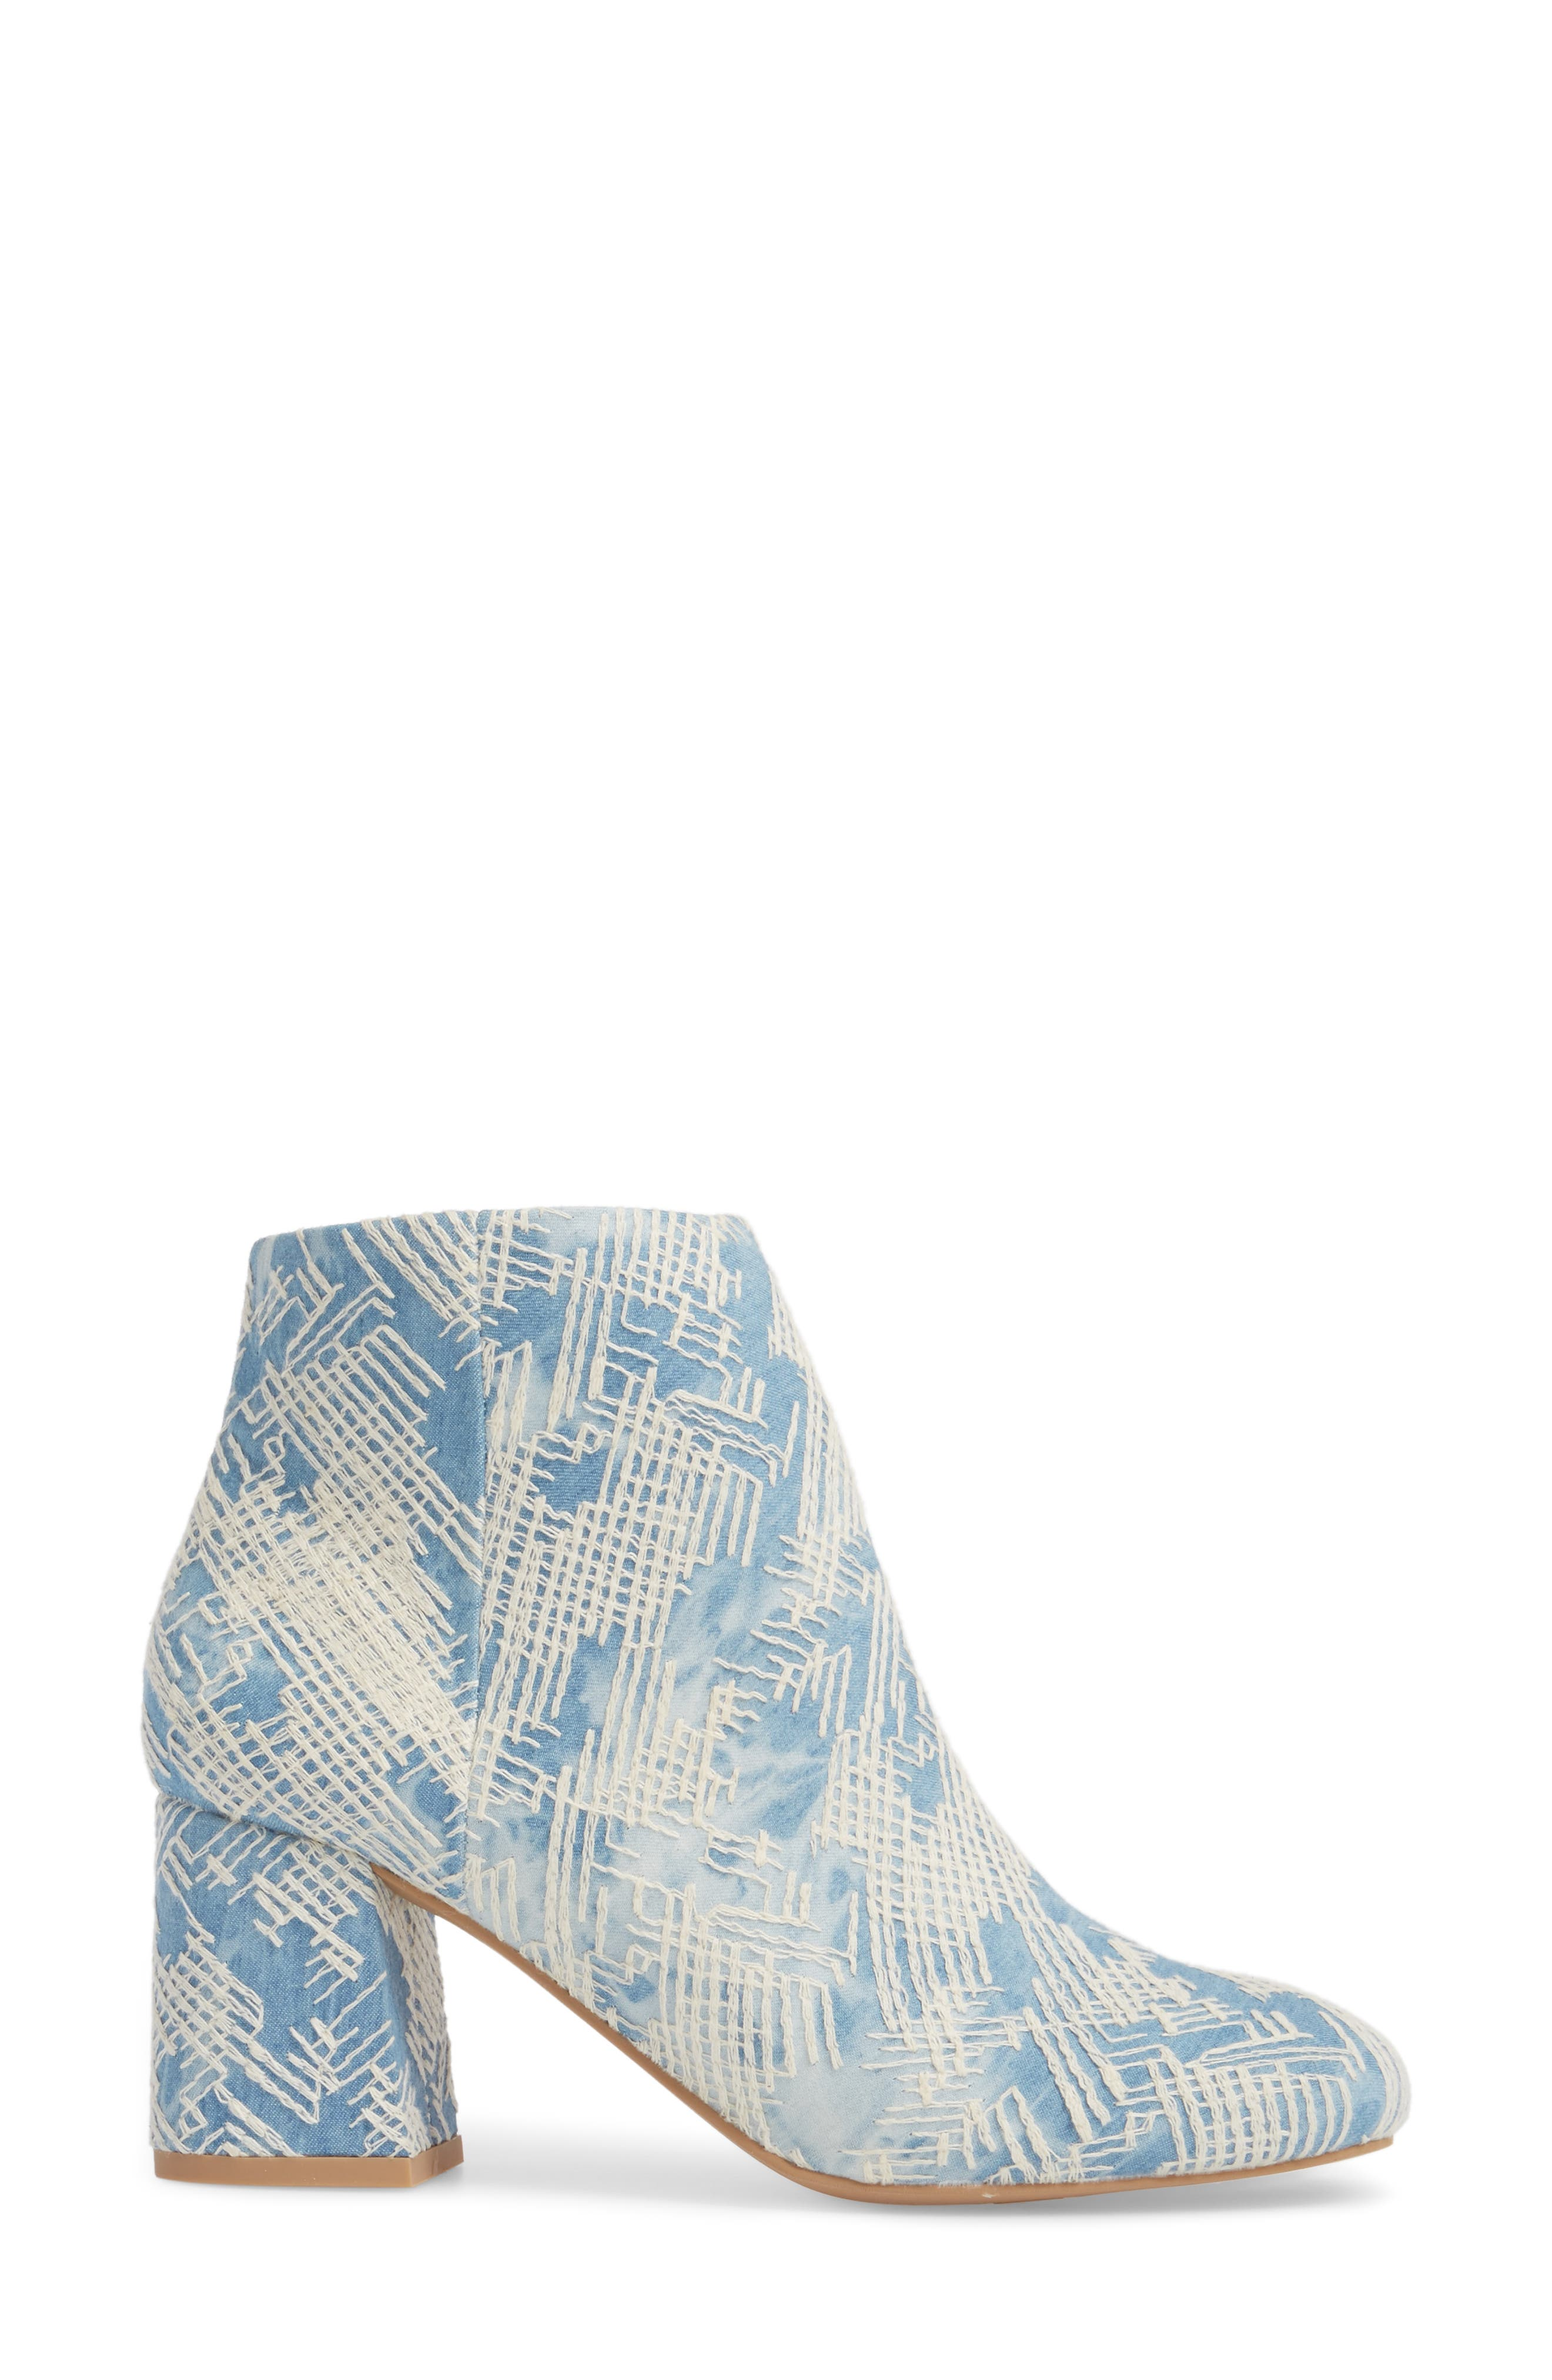 Audition Bootie,                             Alternate thumbnail 3, color,                             Emrboidered Denim